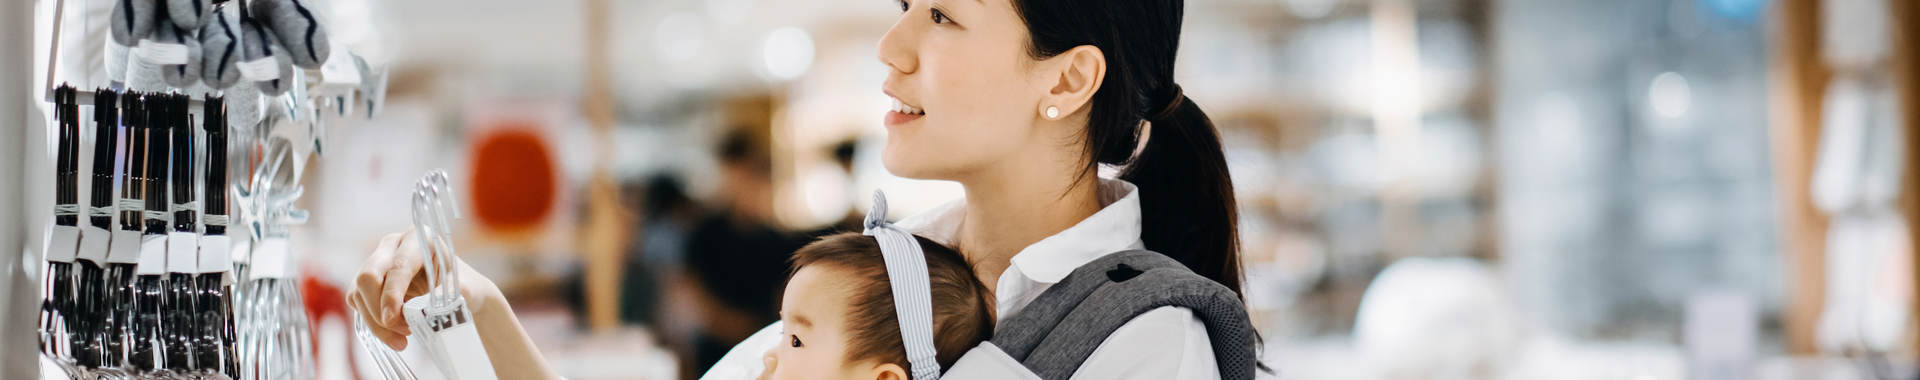 Asian women with baby shopping at department store